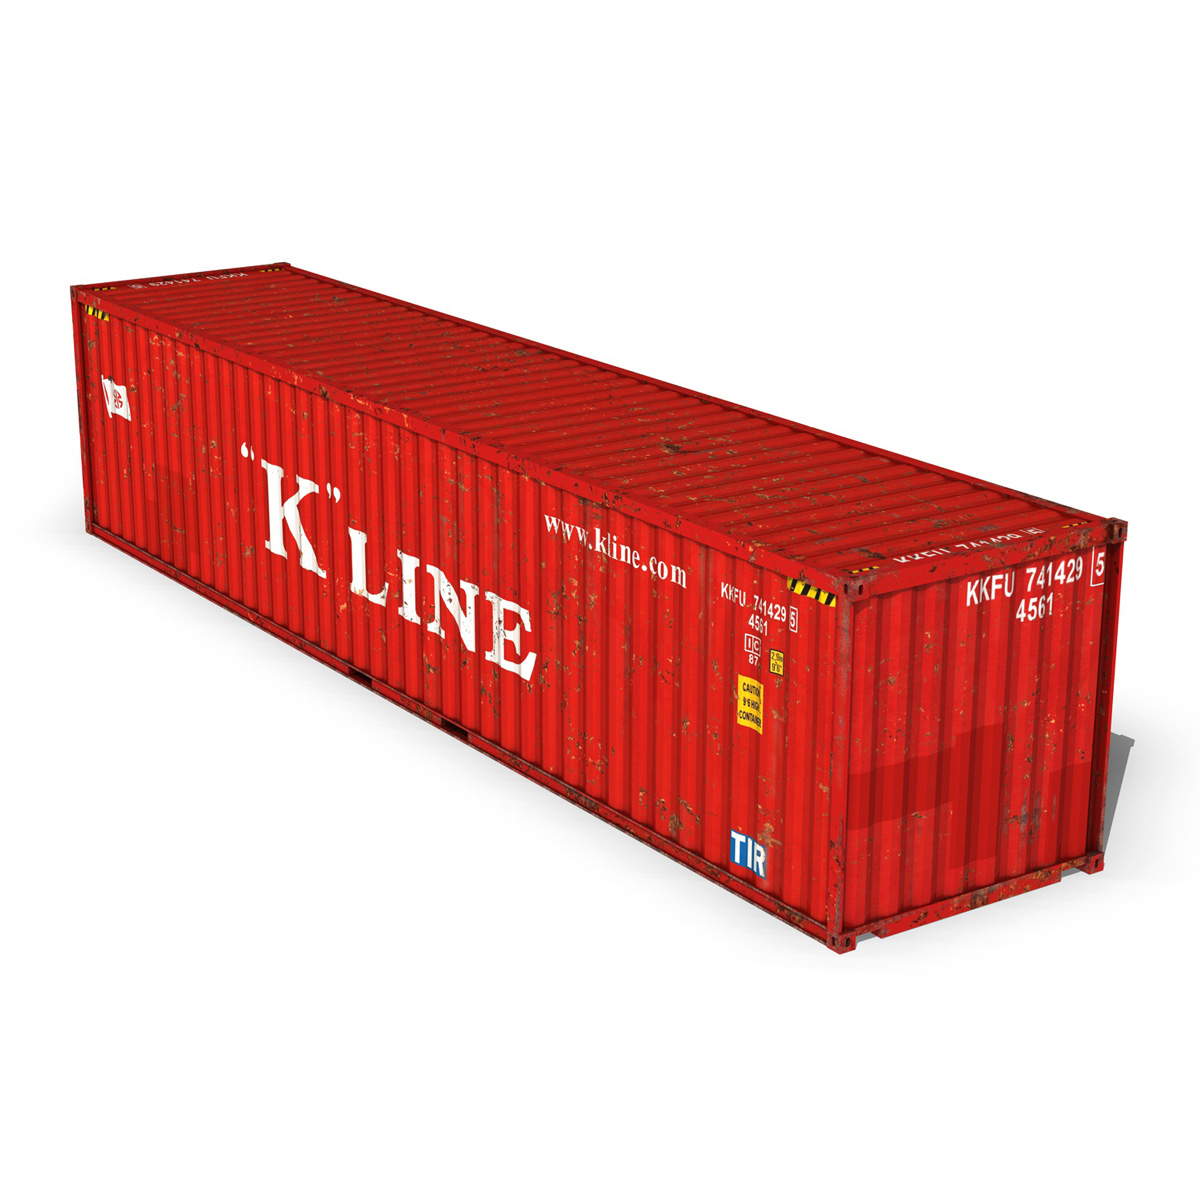 40ft shipping container – k line 3d model 3ds fbx lwo lw lws obj c4d 265119